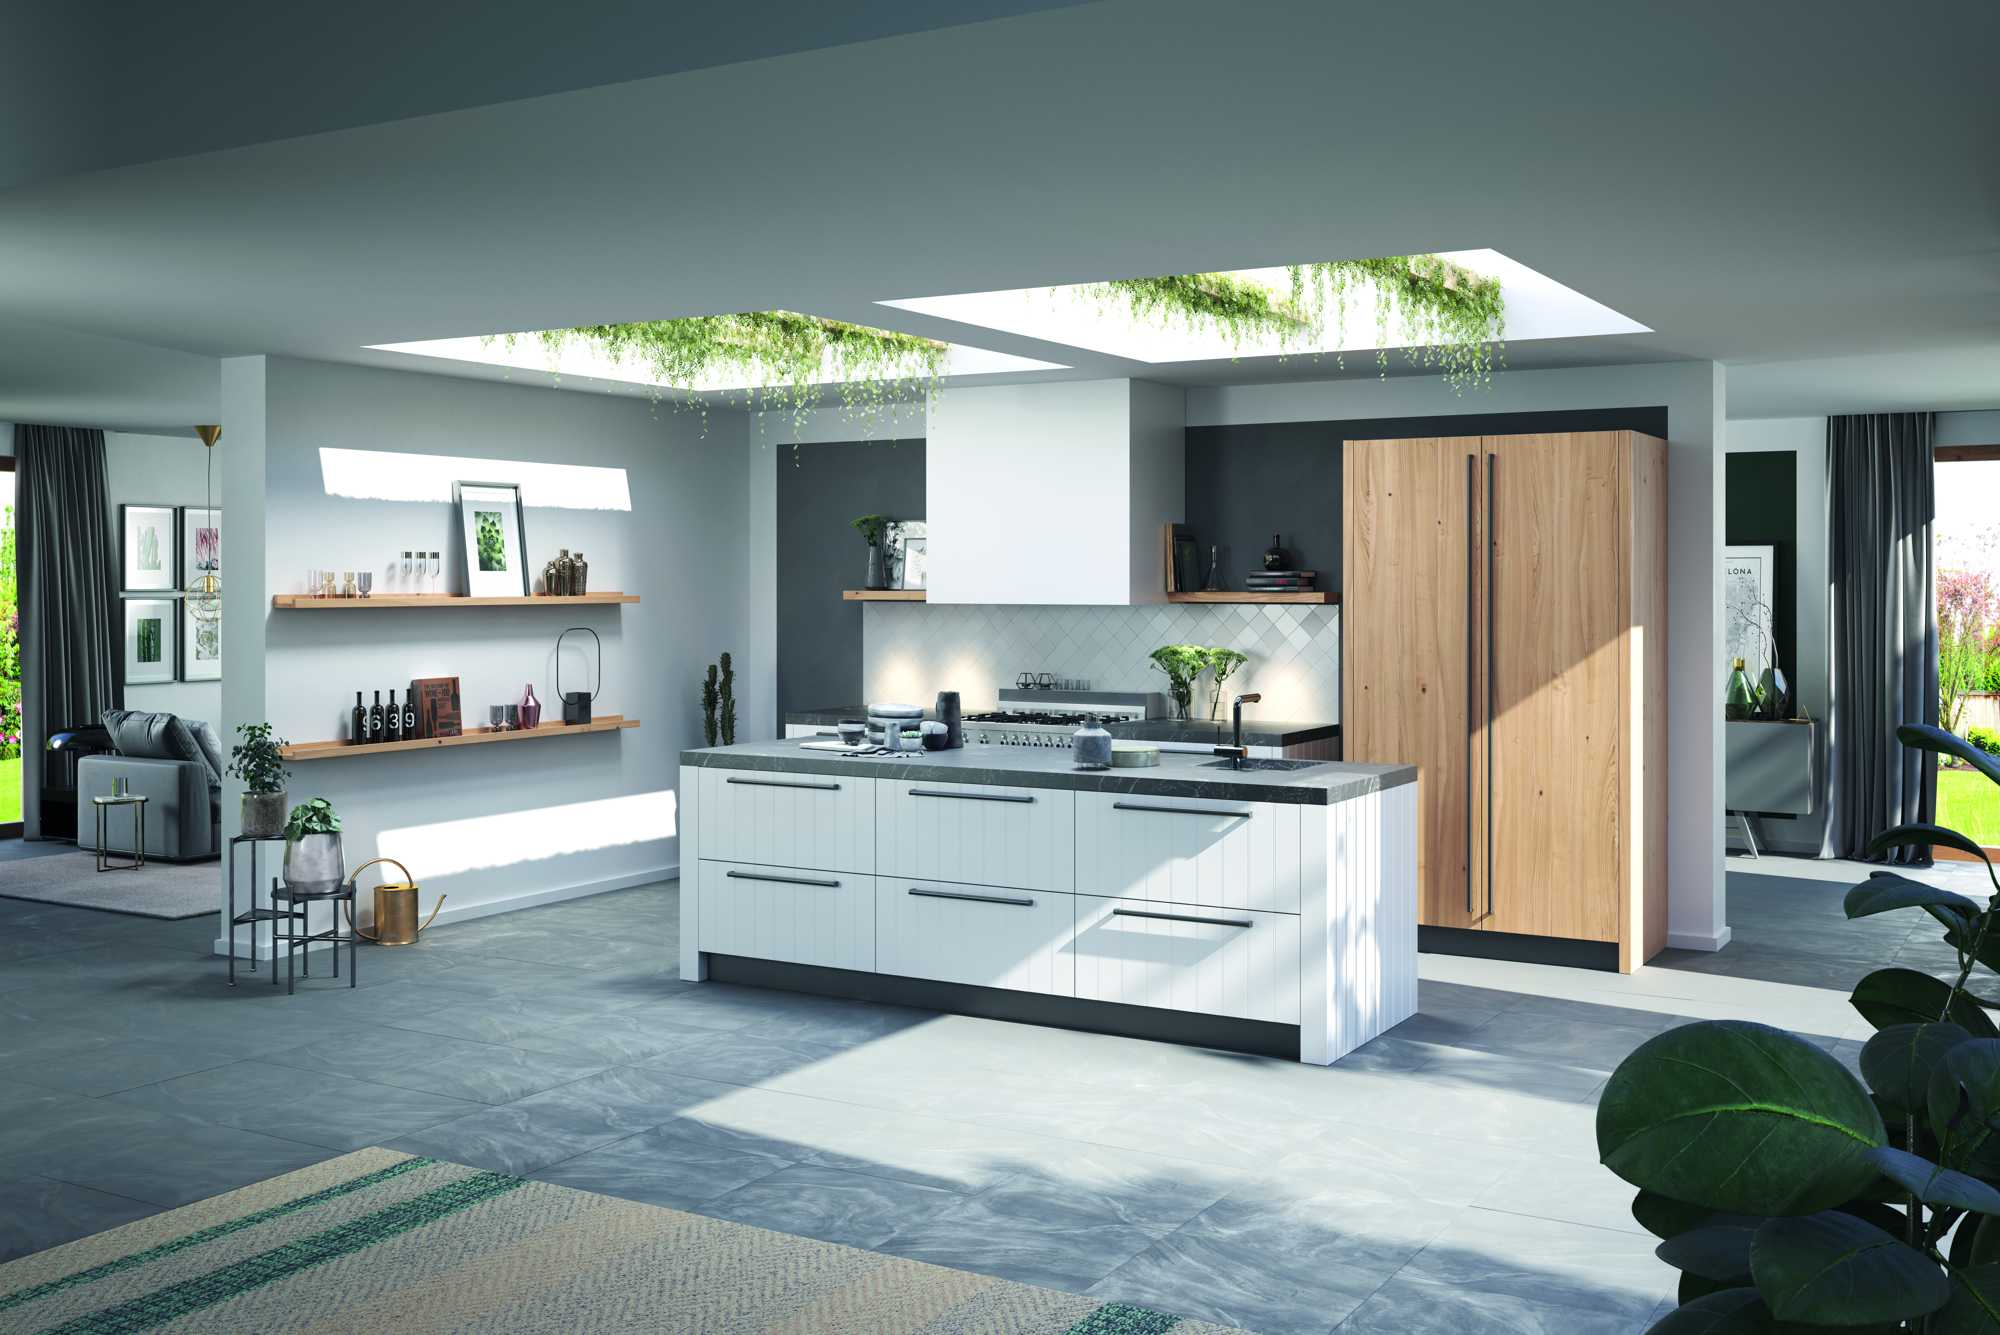 Two tone kitchen: Duet White LX and Memory New Forest Oak CL